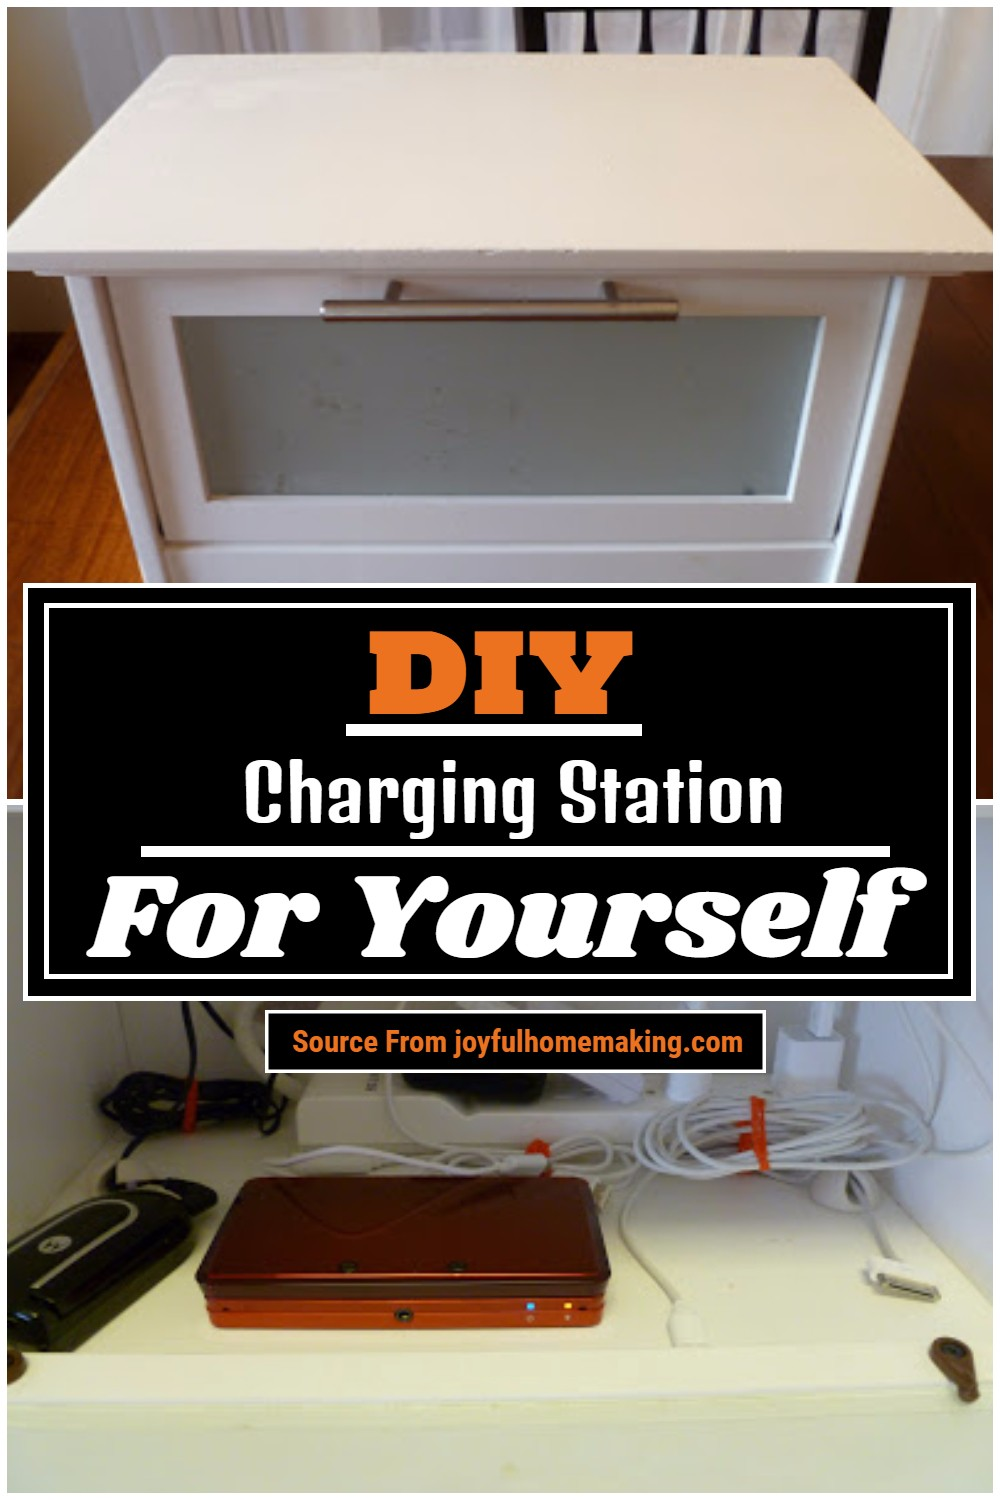 DIY Charging Station For Yourself